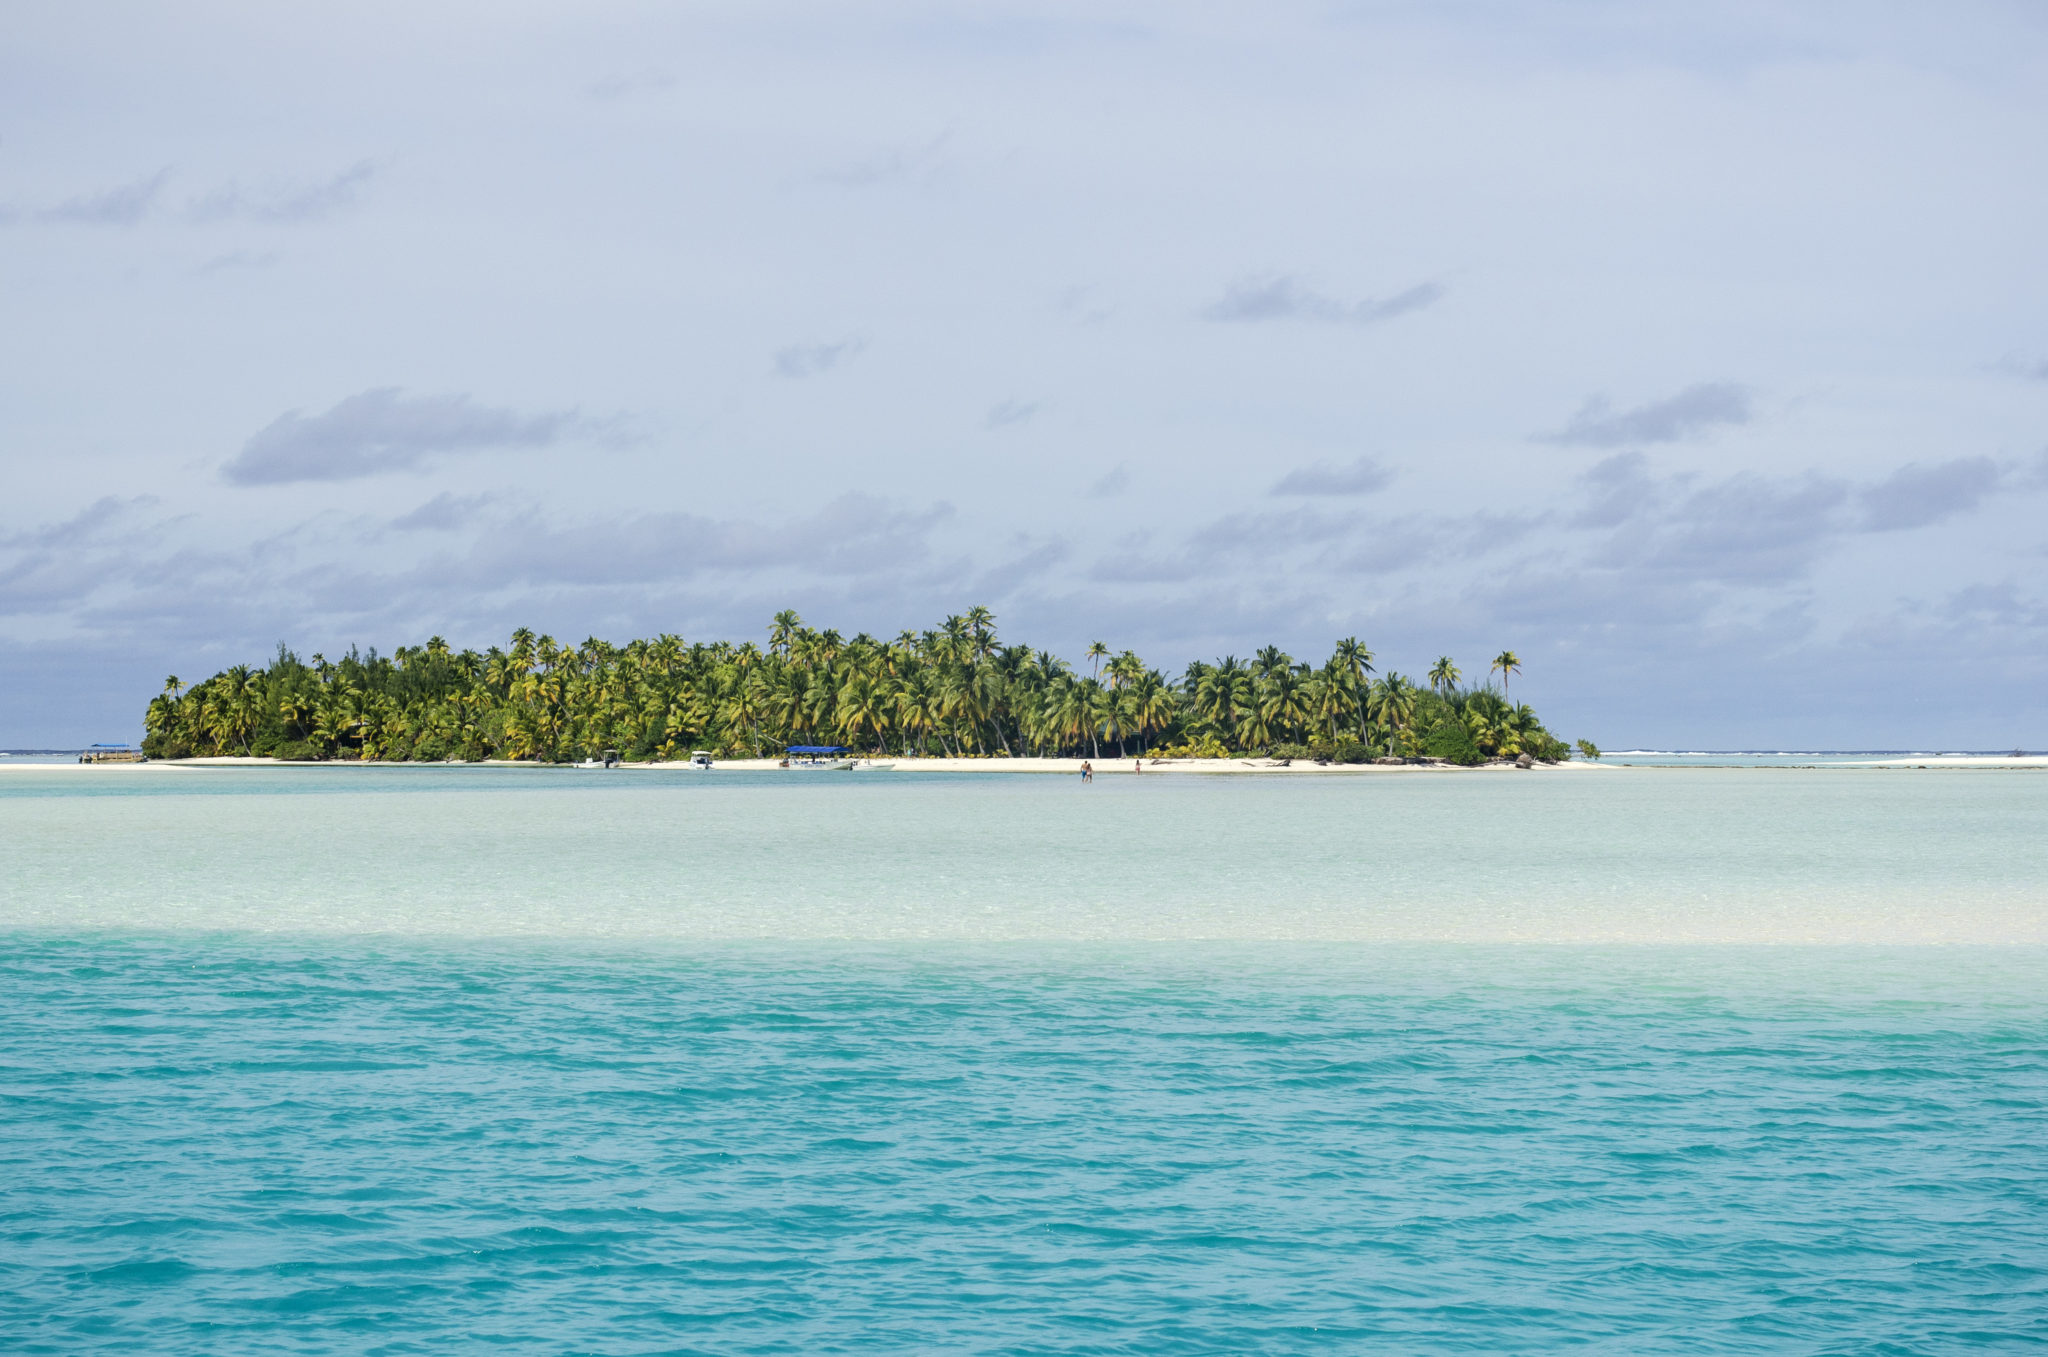 This small island is not far away from Aitutaki (Cook Islands)